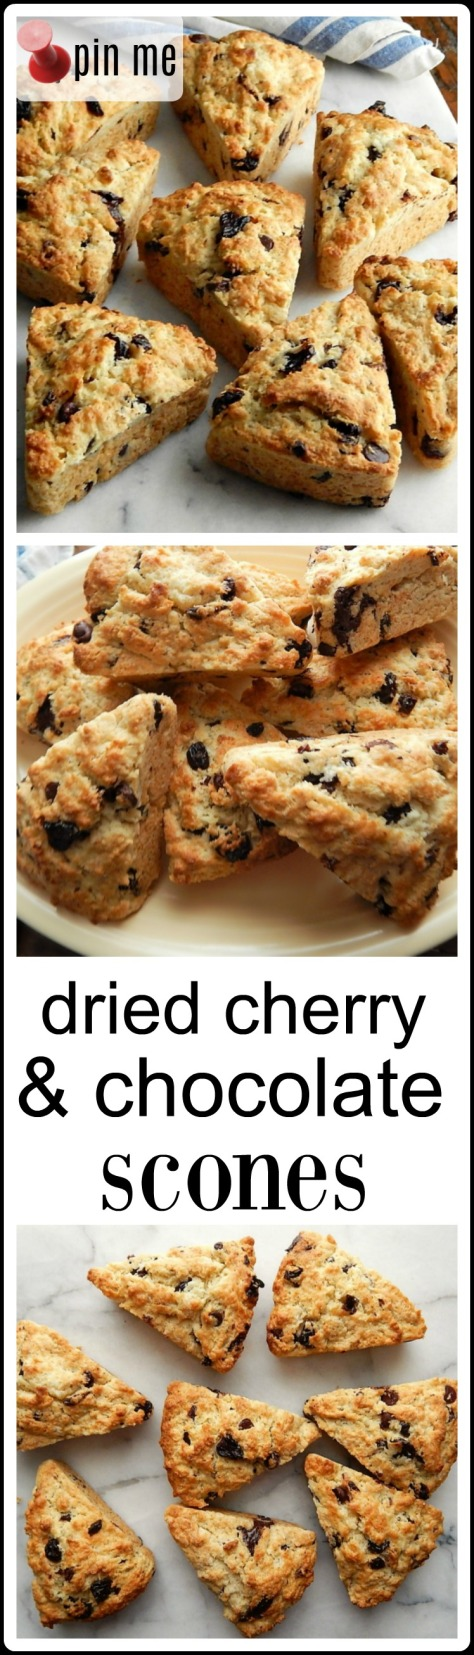 Dried Cherry & Chocolate Scones - use two different chocolates for the most amazing flavor combo with the dried cherries! These are going down as a family favorite!